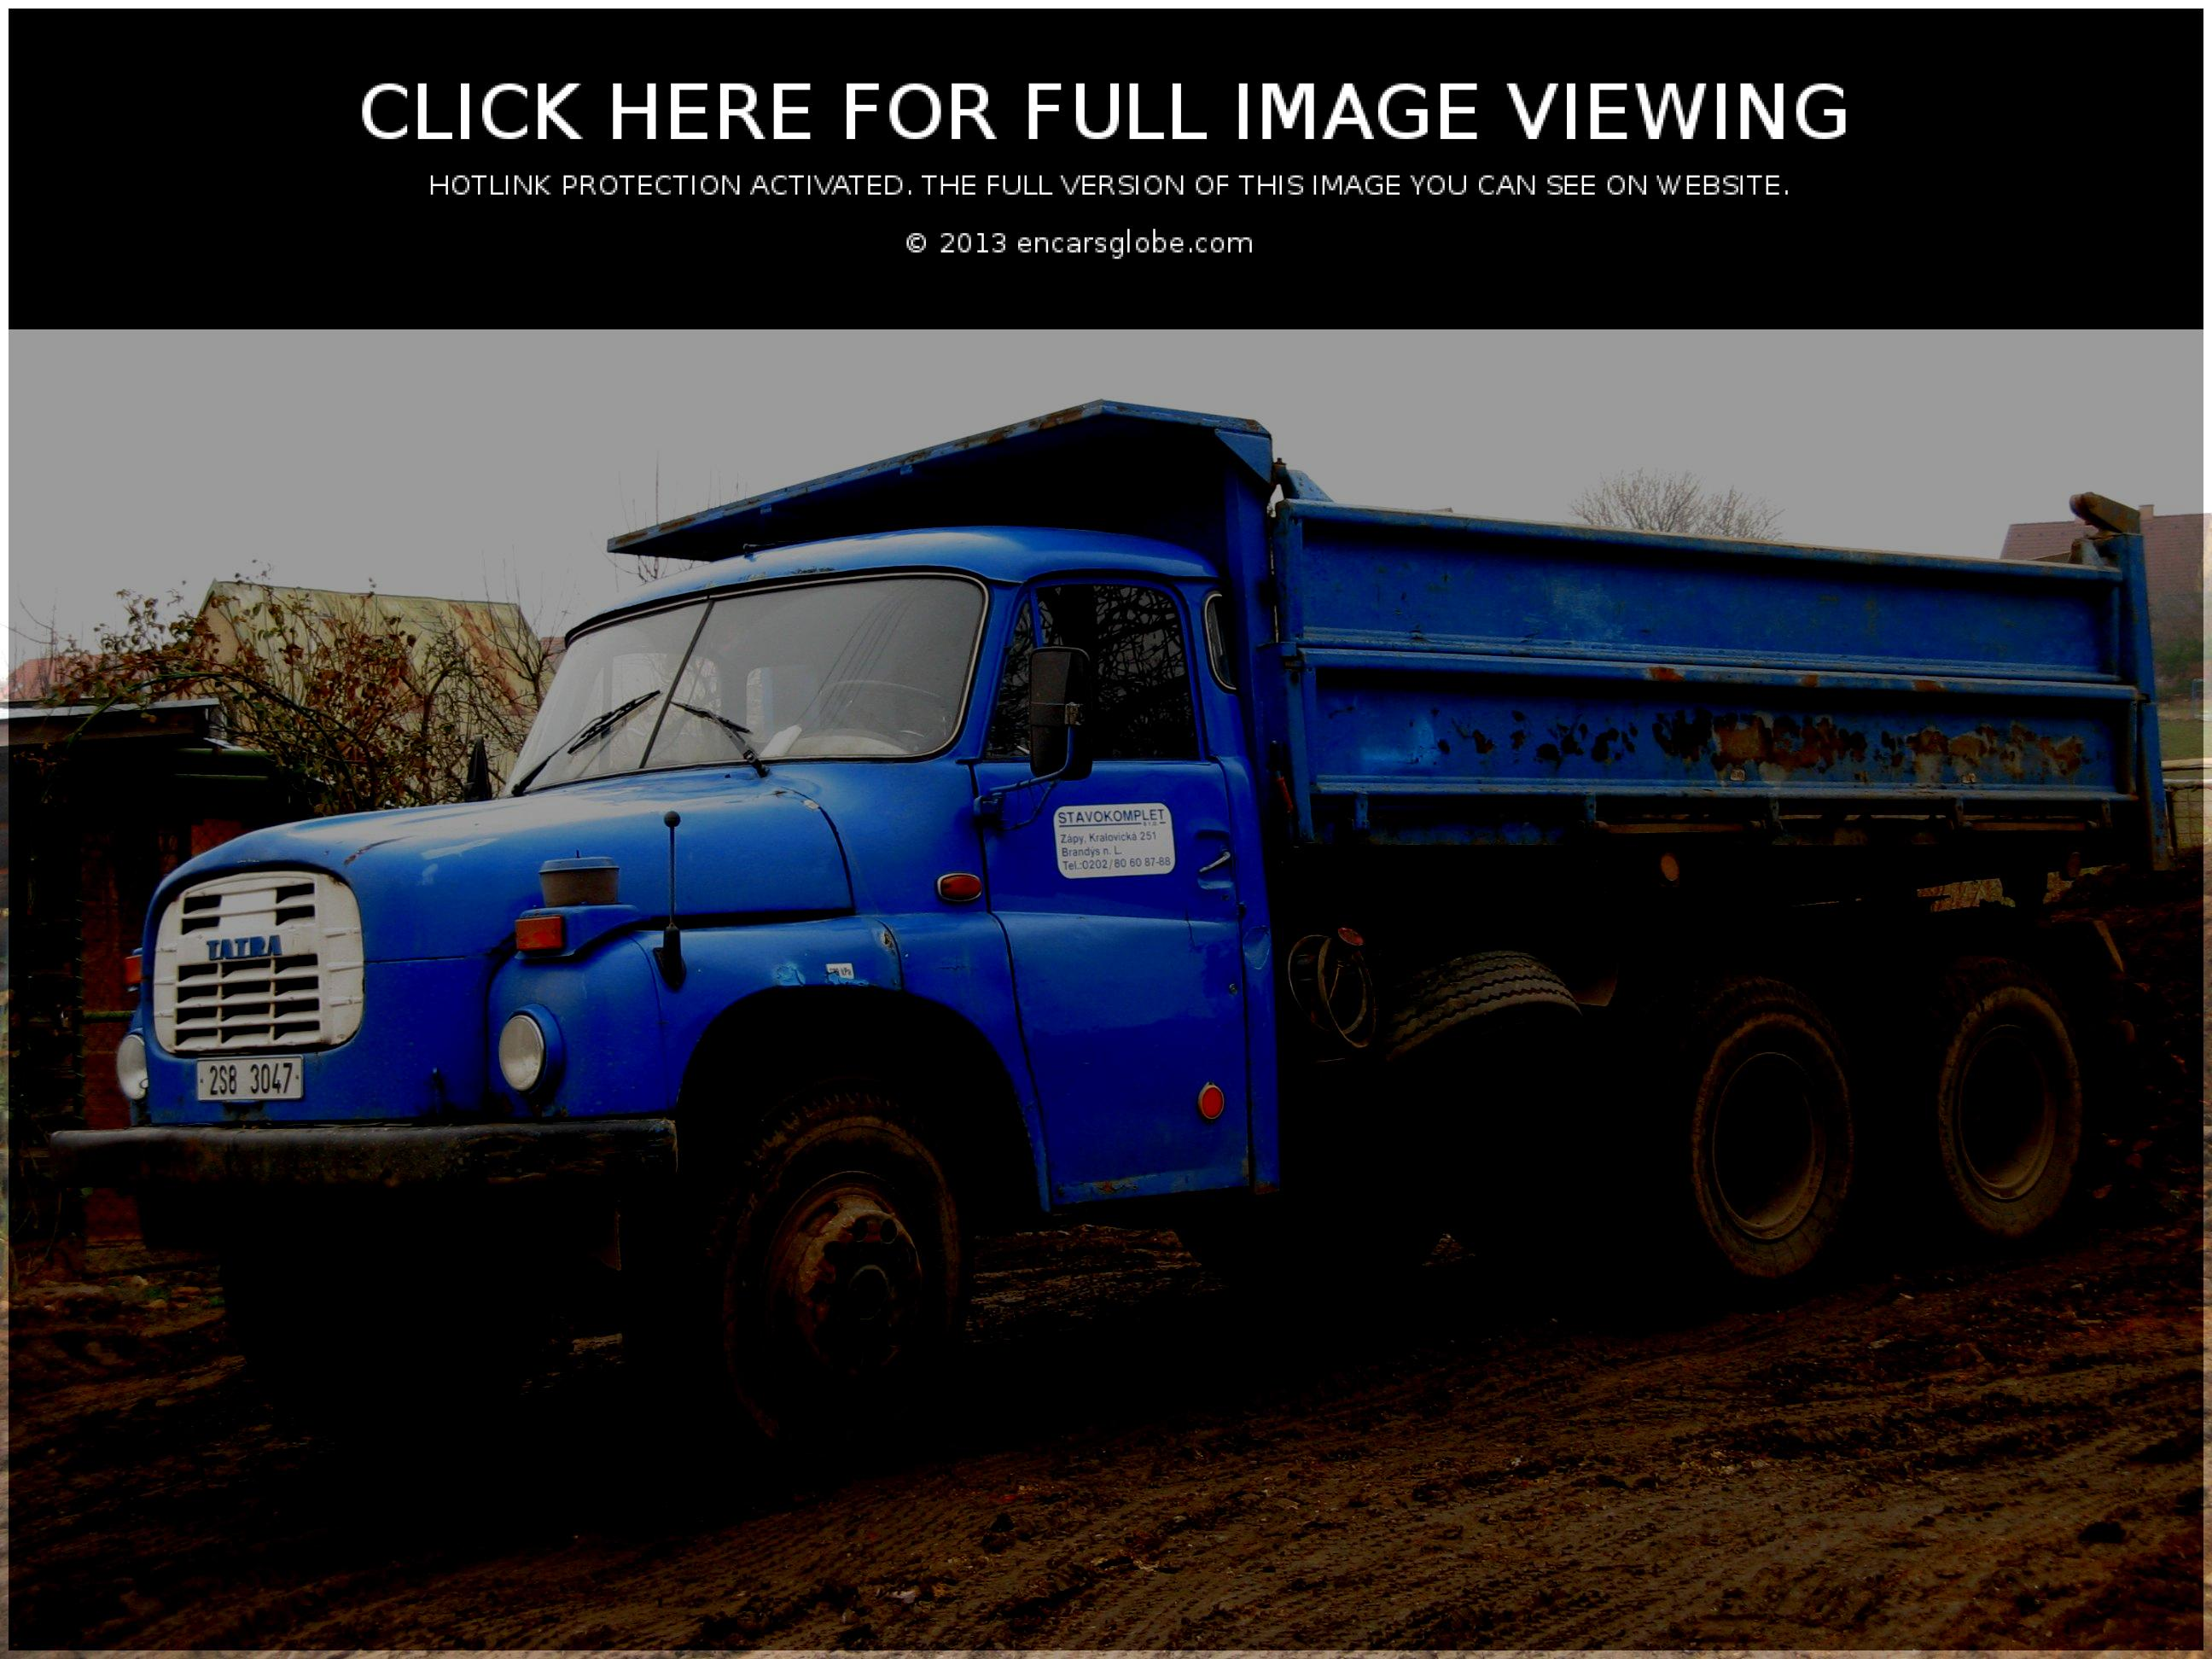 Tatra 148: Photo gallery, complete information about model ...